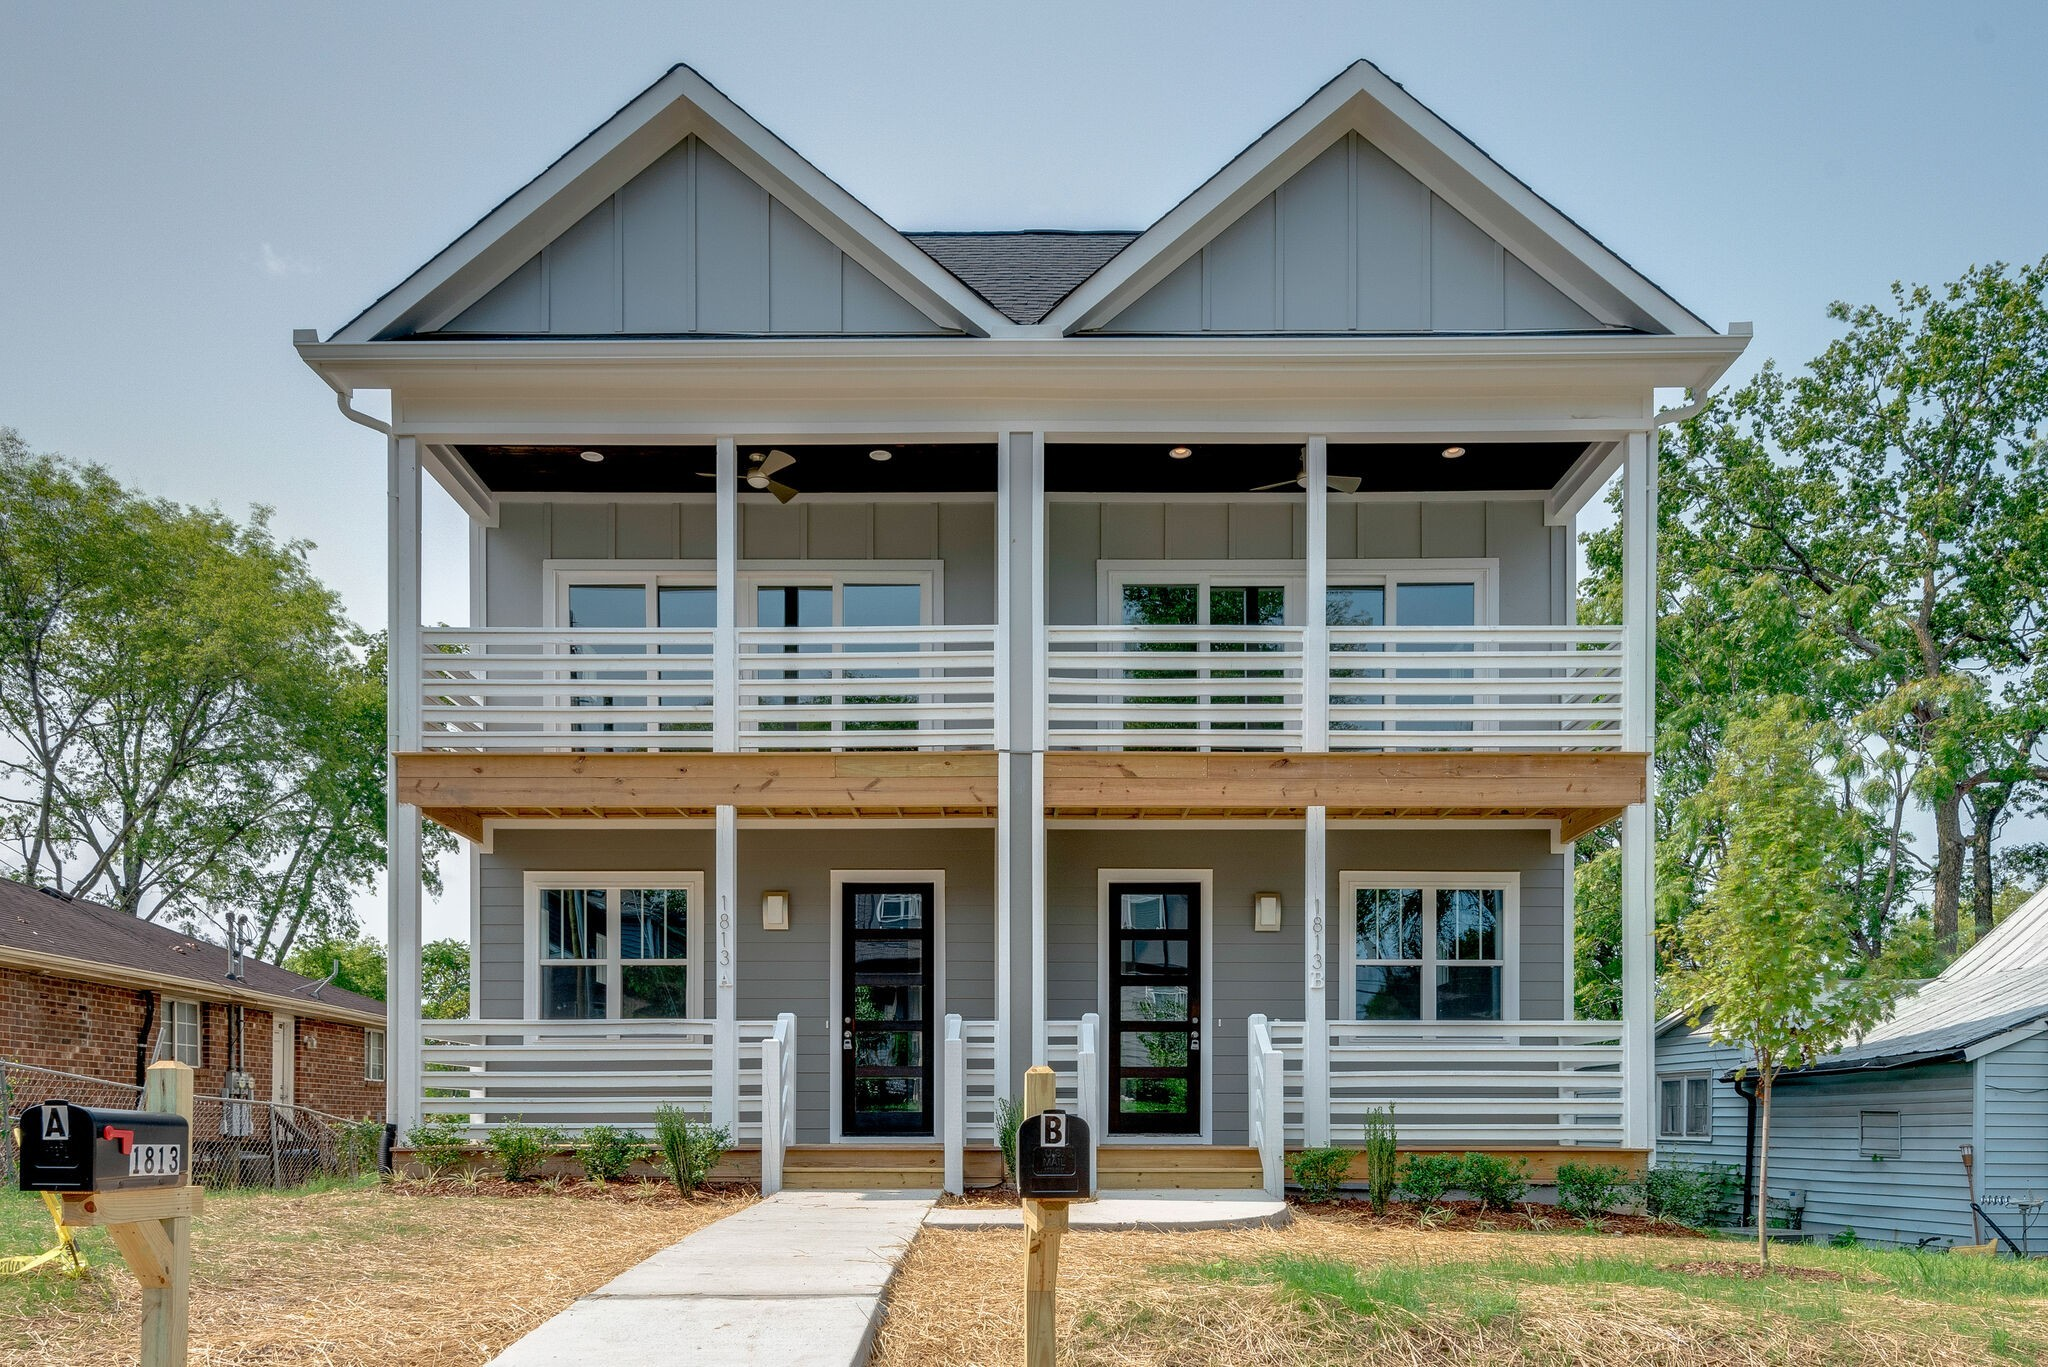 New Construction located in Buchanan Art District. This 3BR 3.5BA home features natural wood flooring, quartz countertops and unique light fixtures. Front and rear decks, a bonus room, bedroom on main floor and privacy fence provides a distinguishing touch.